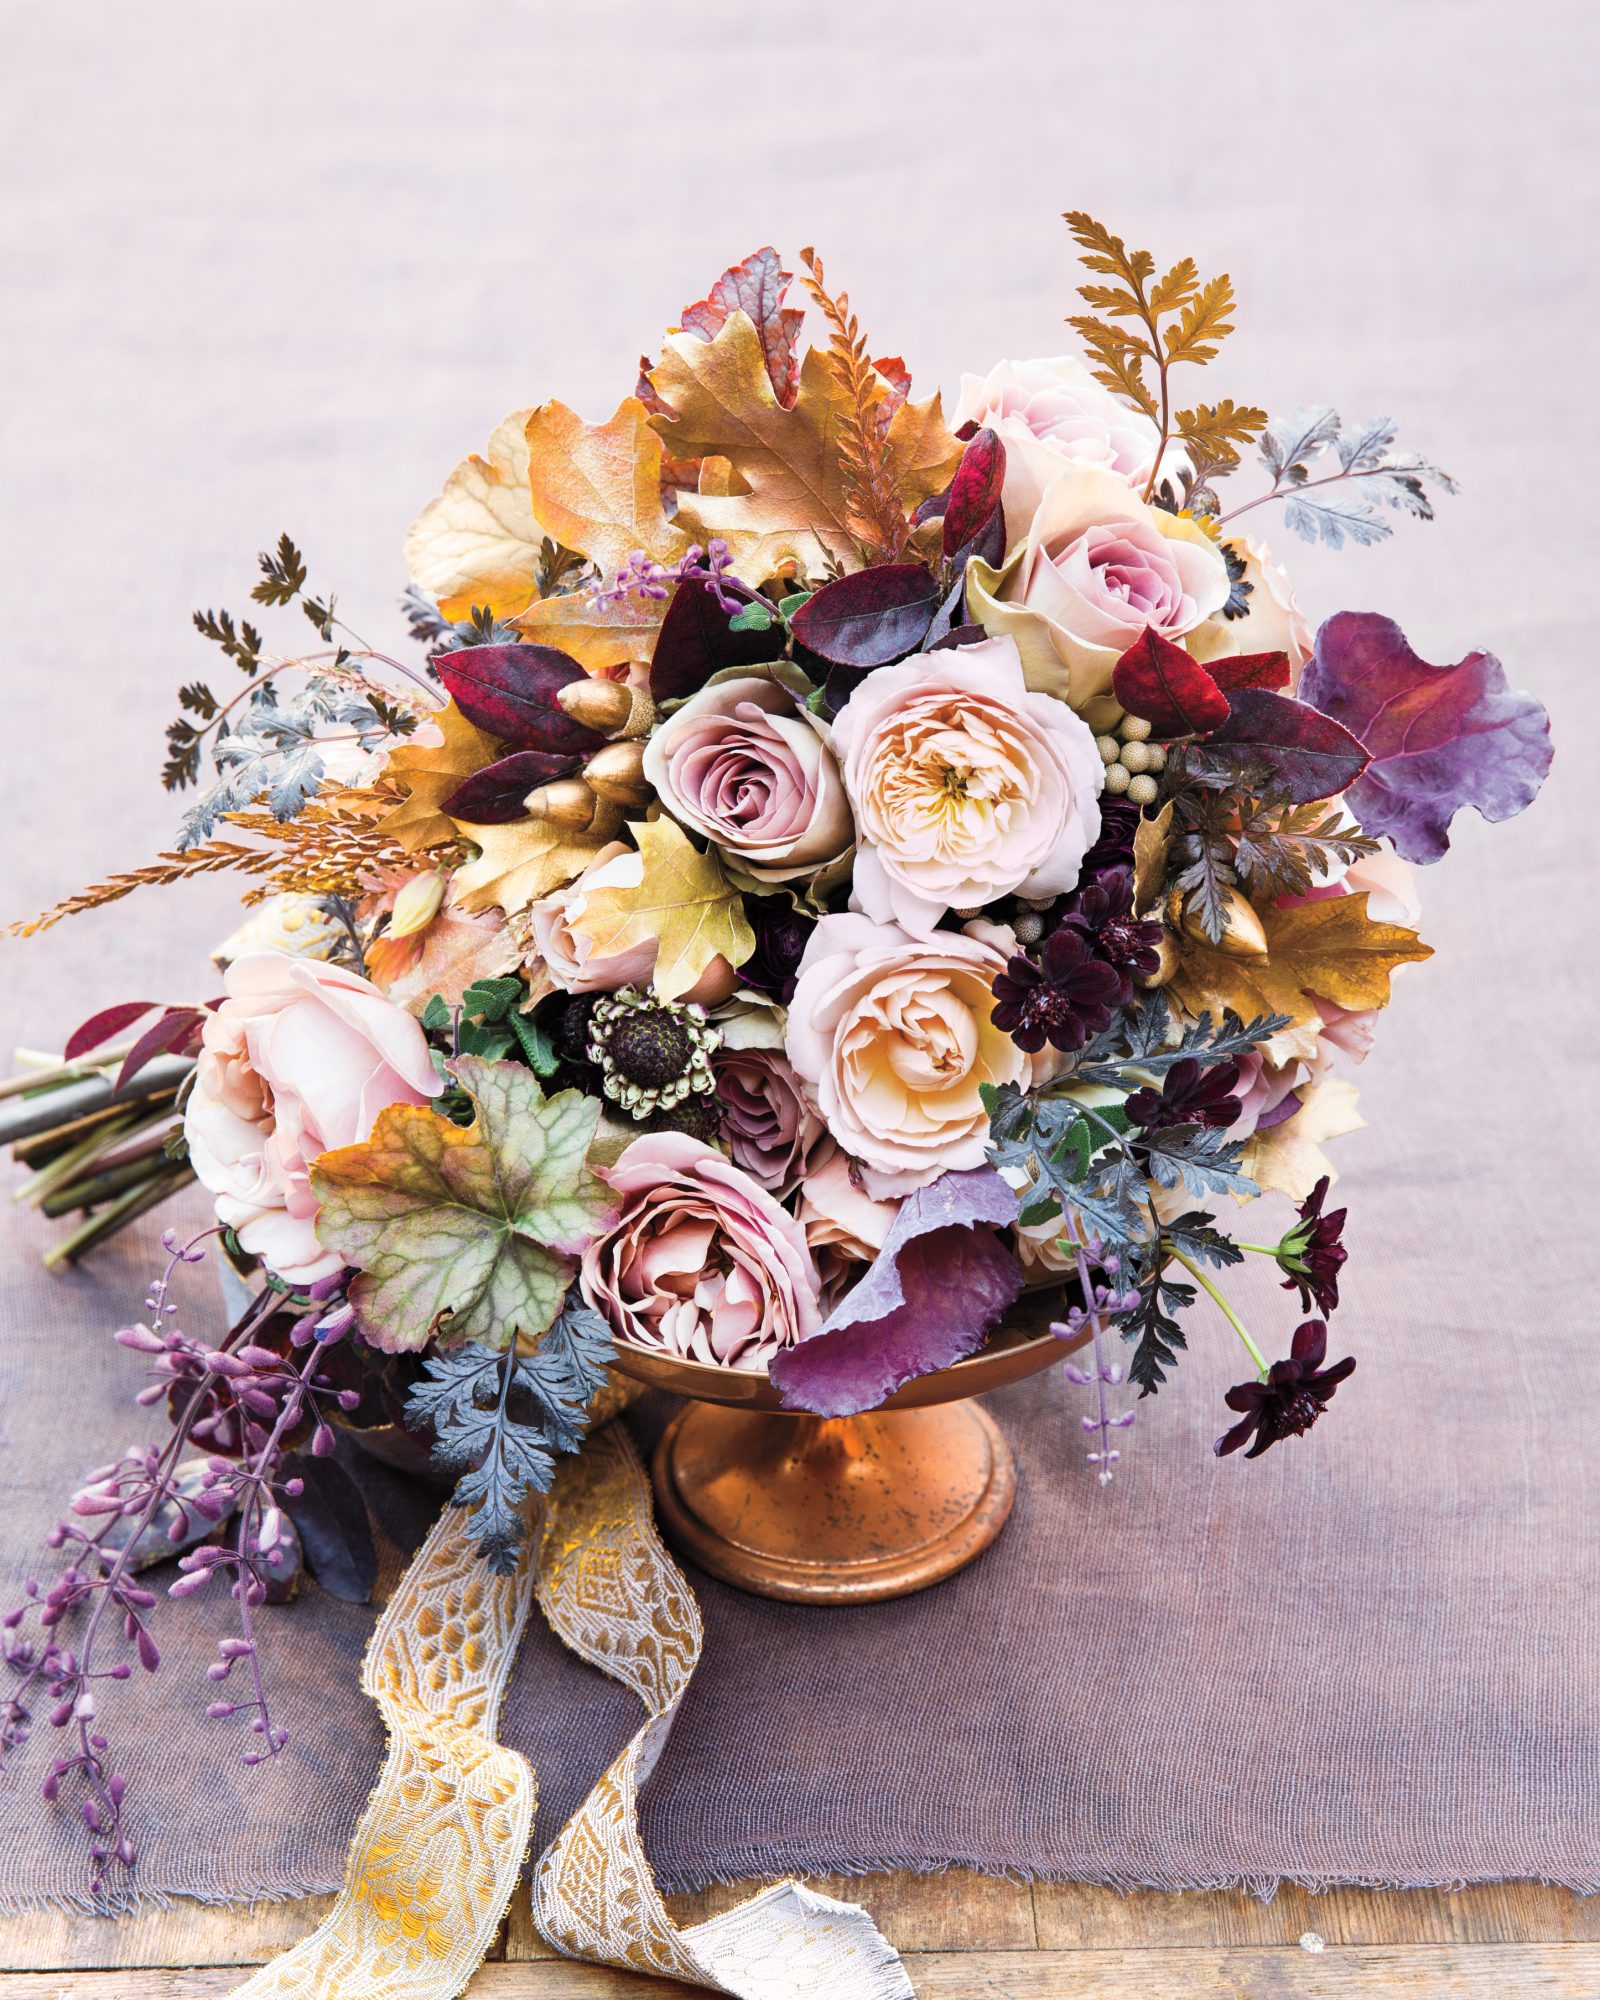 bouquet-6256-mwd110838.jpg